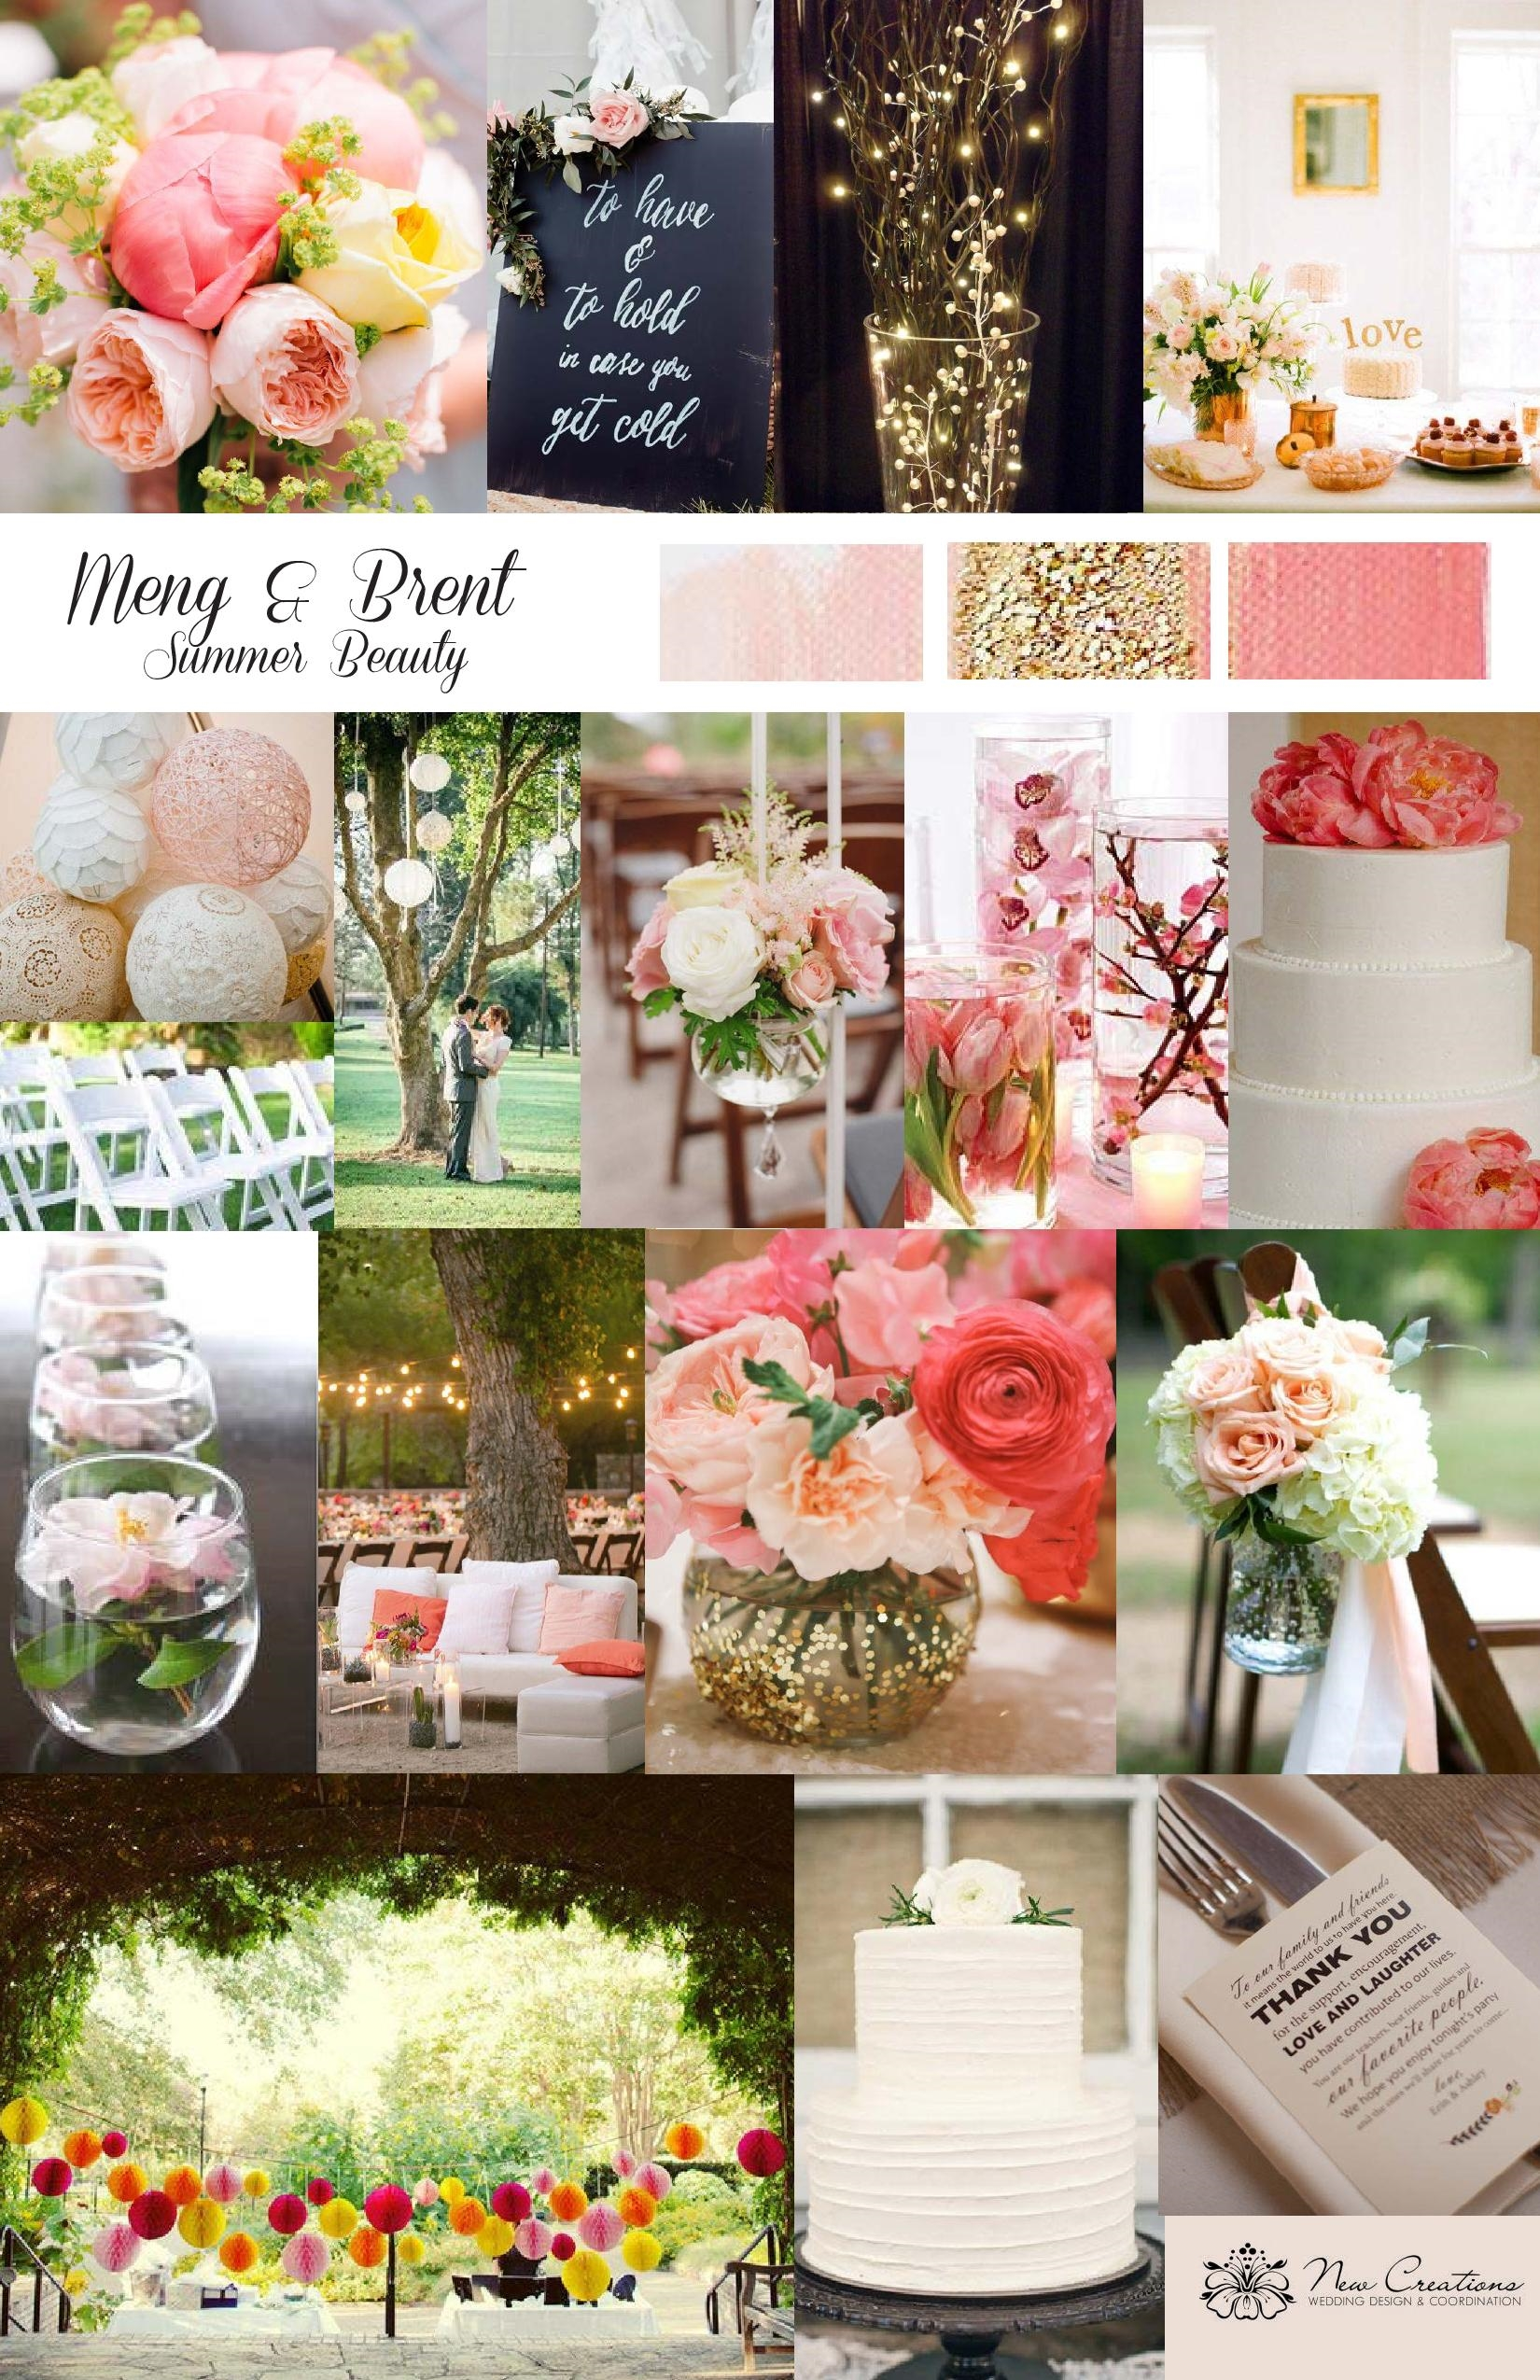 Original Inspiration Board For Meng and Brent Created by New Creations Weddings   Pink and Peach Wedding